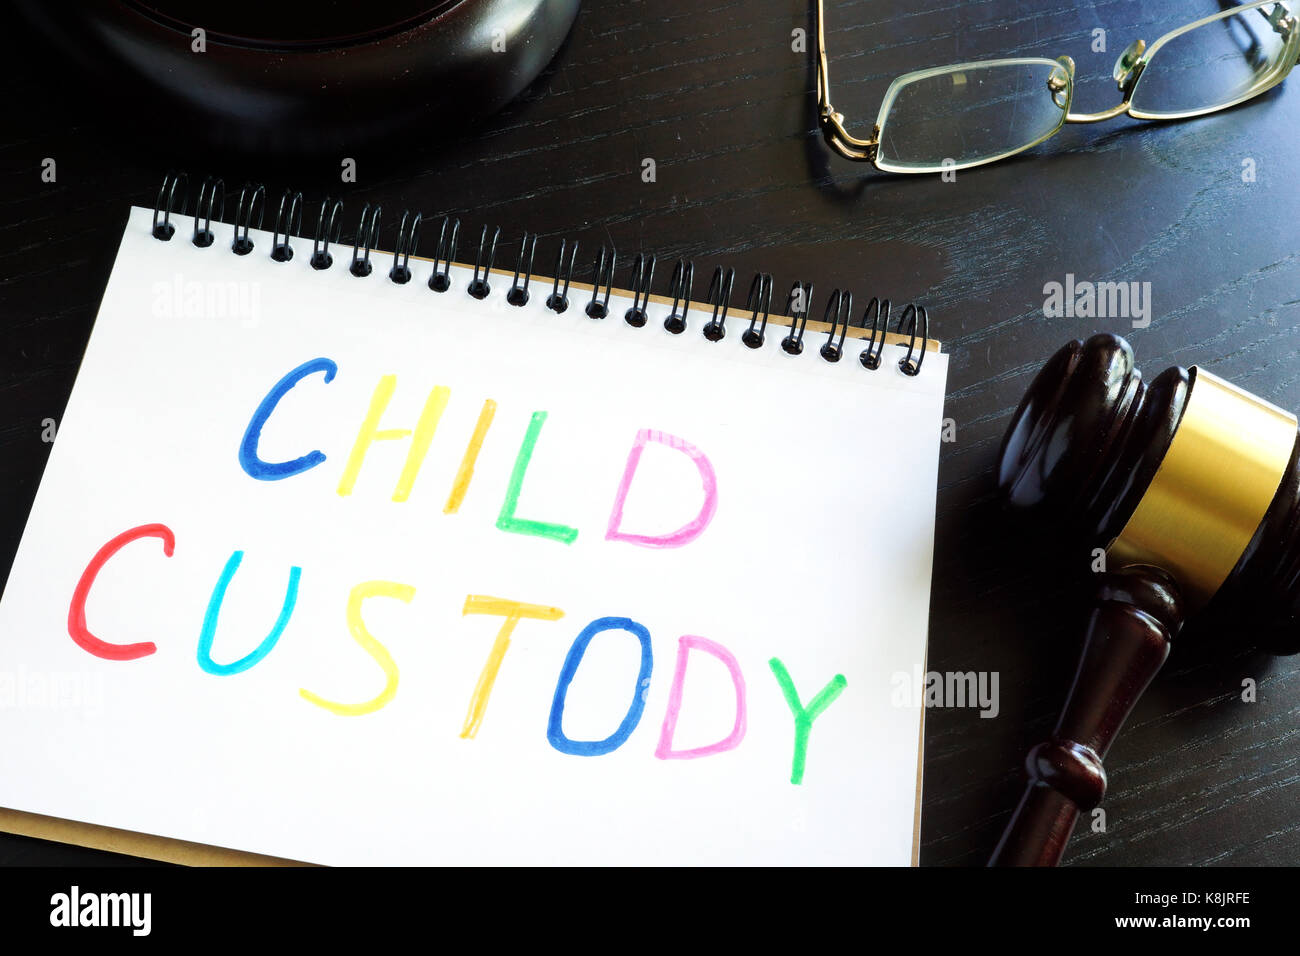 Child custody written in a note and gavel. Separation concept. - Stock Image